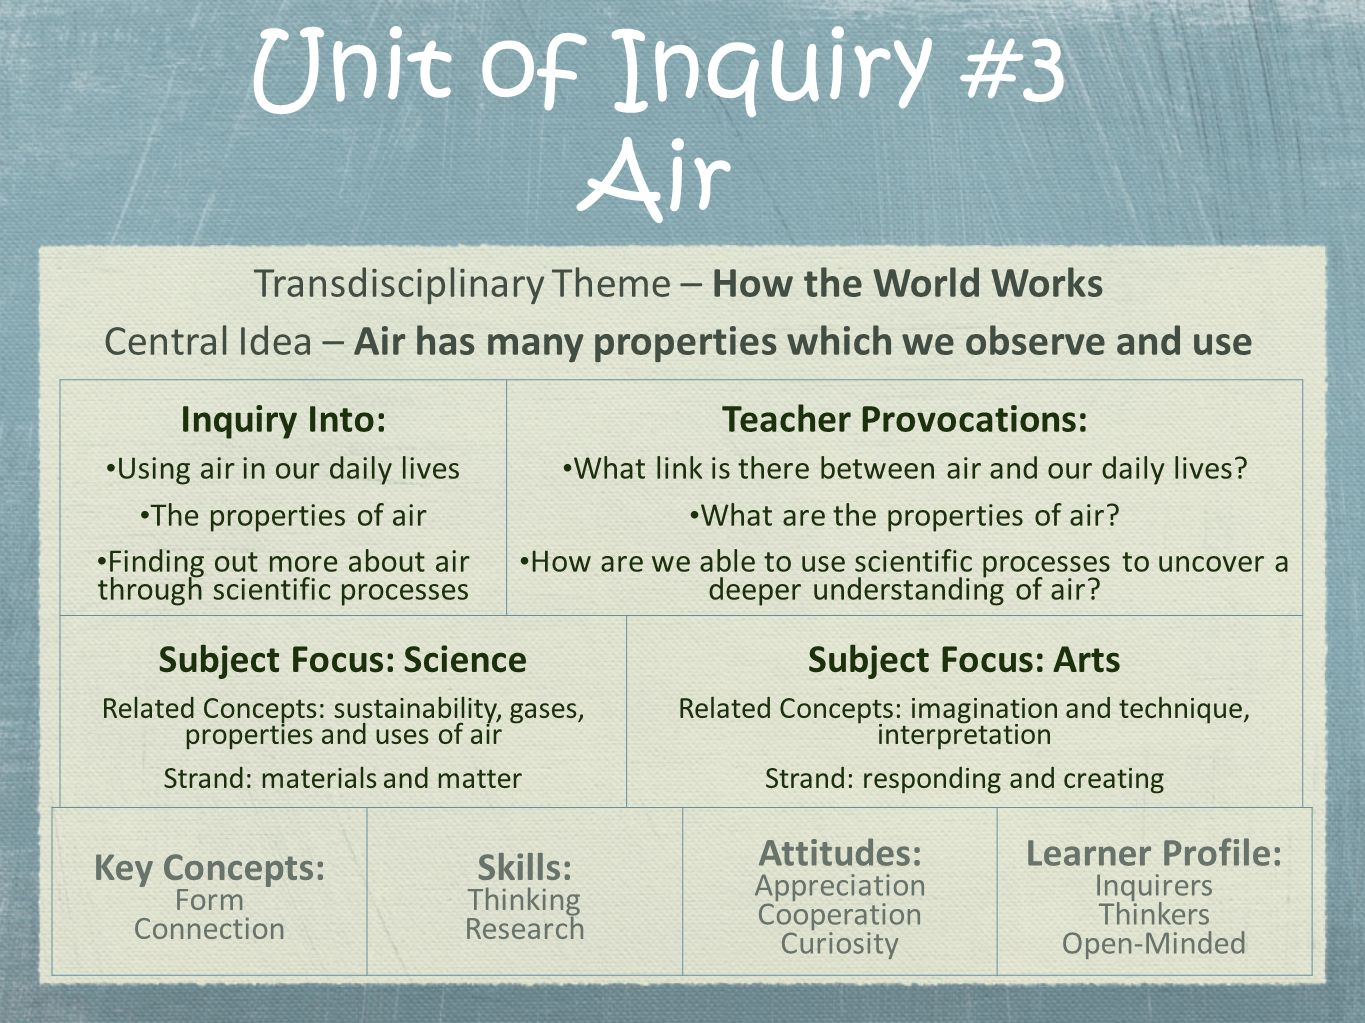 Unit of Inquiry #3 Air Key Concepts: Form Connection Skills: Thinking Research Attitudes: Appreciation Cooperation Curiosity Learner Profile: Inquirer